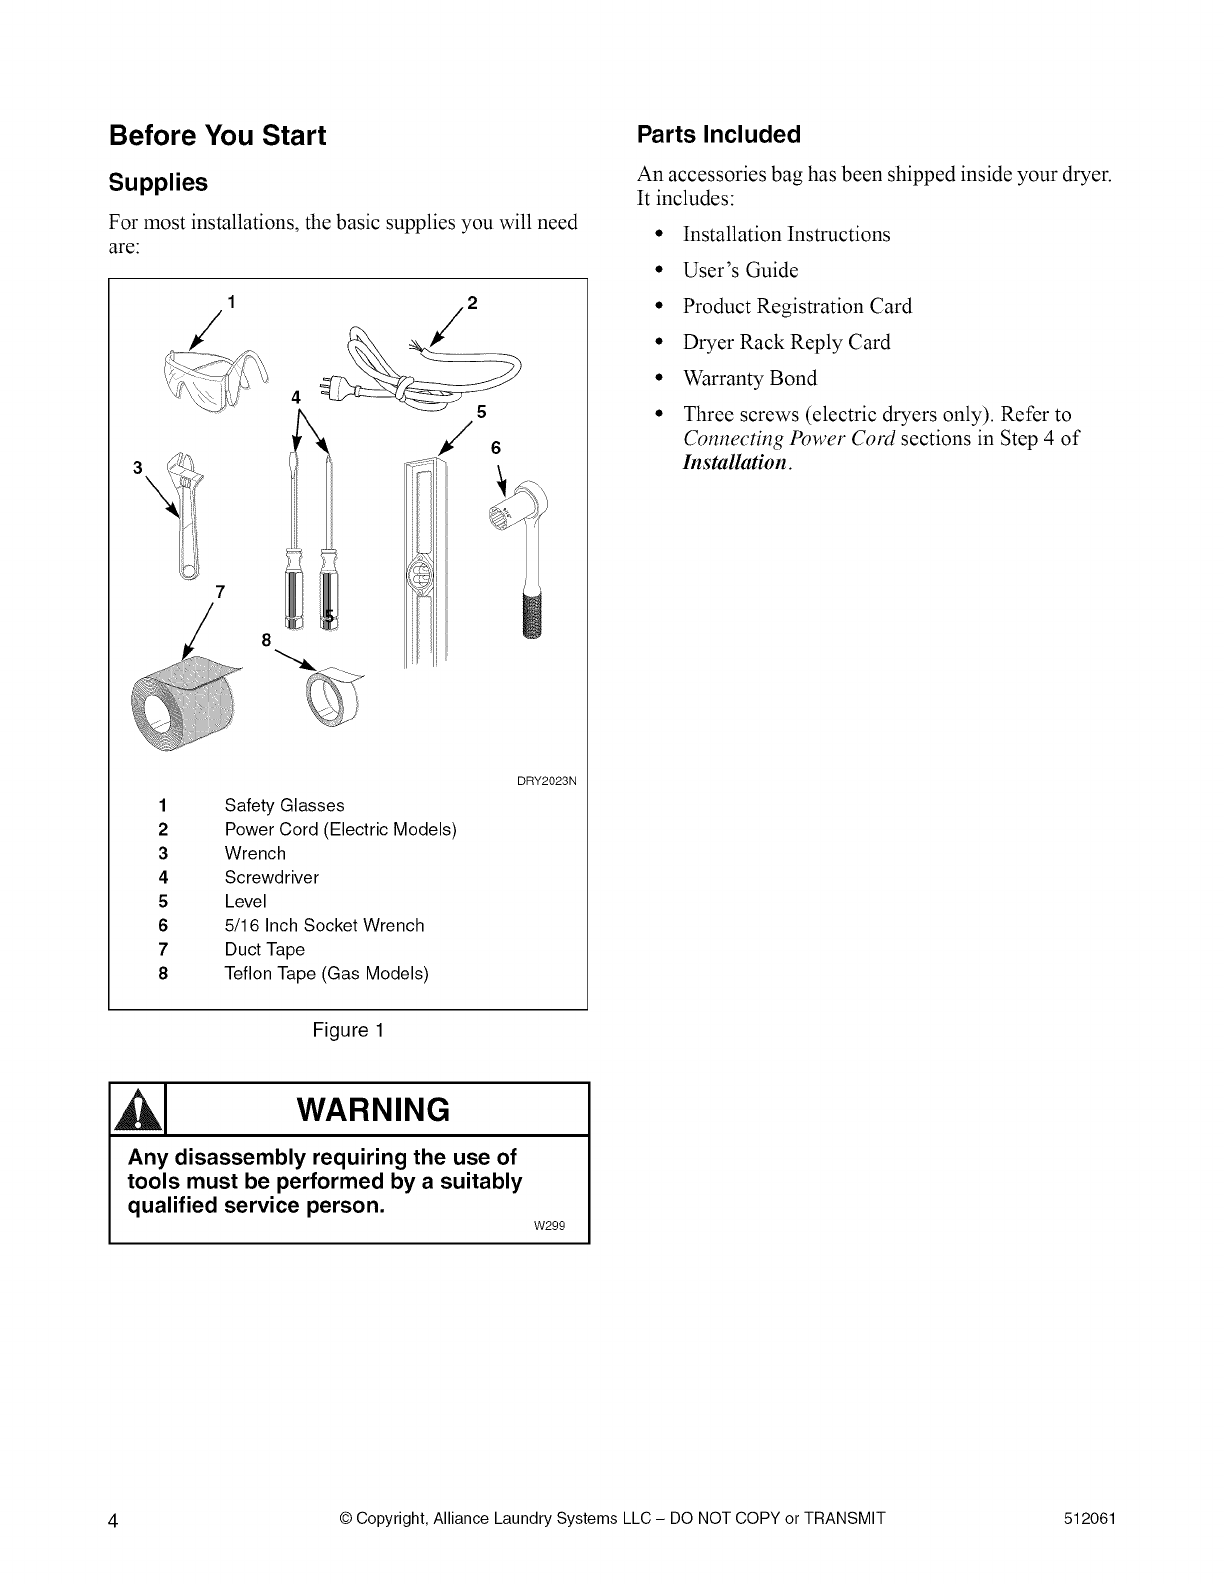 Speed Queen Aes20awf User Manual Dryers Manuals And Guides L0902475 4 Wire Dryer Schematic Wiring Diagram